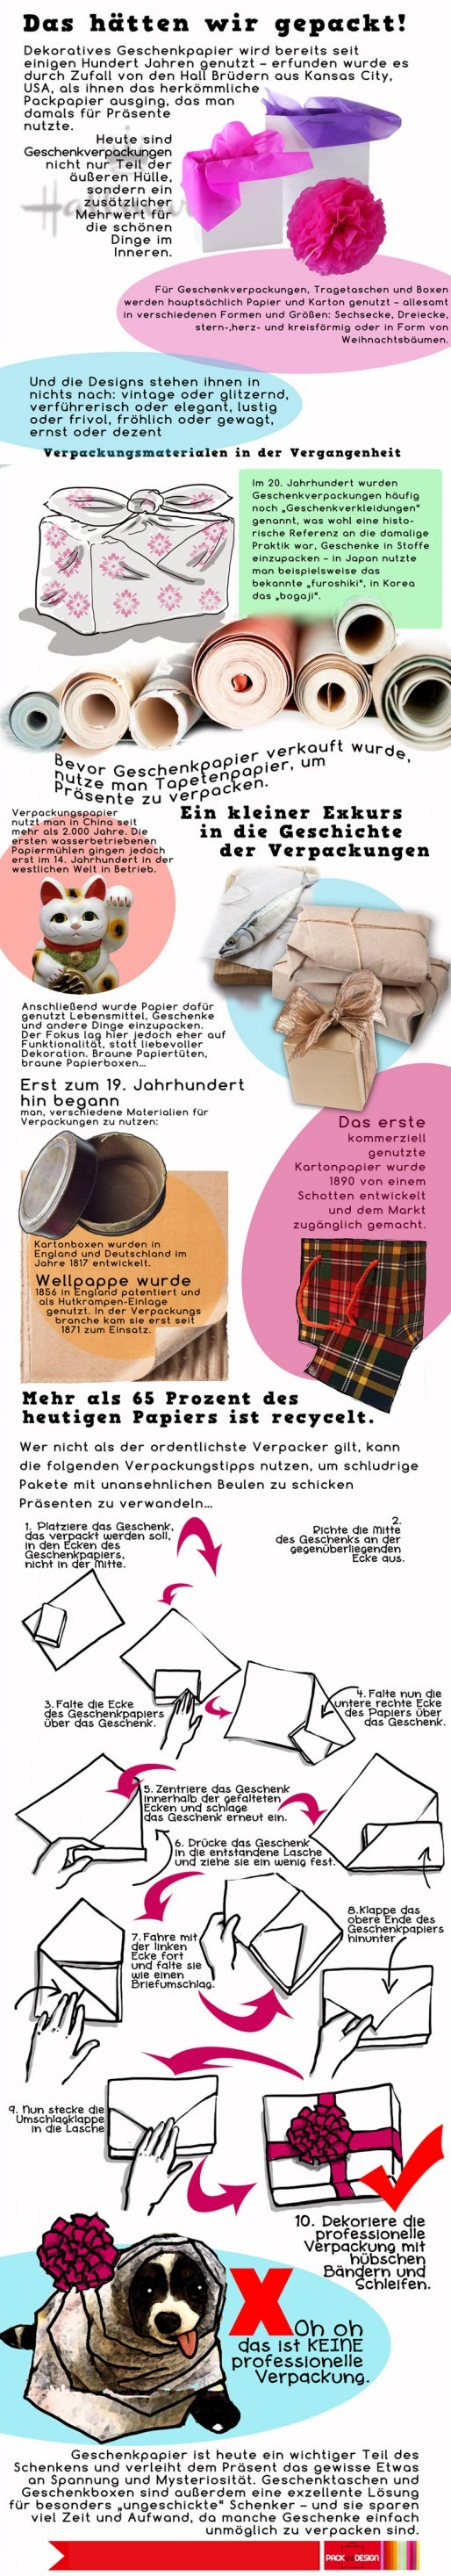 Decorative packaging German infographic